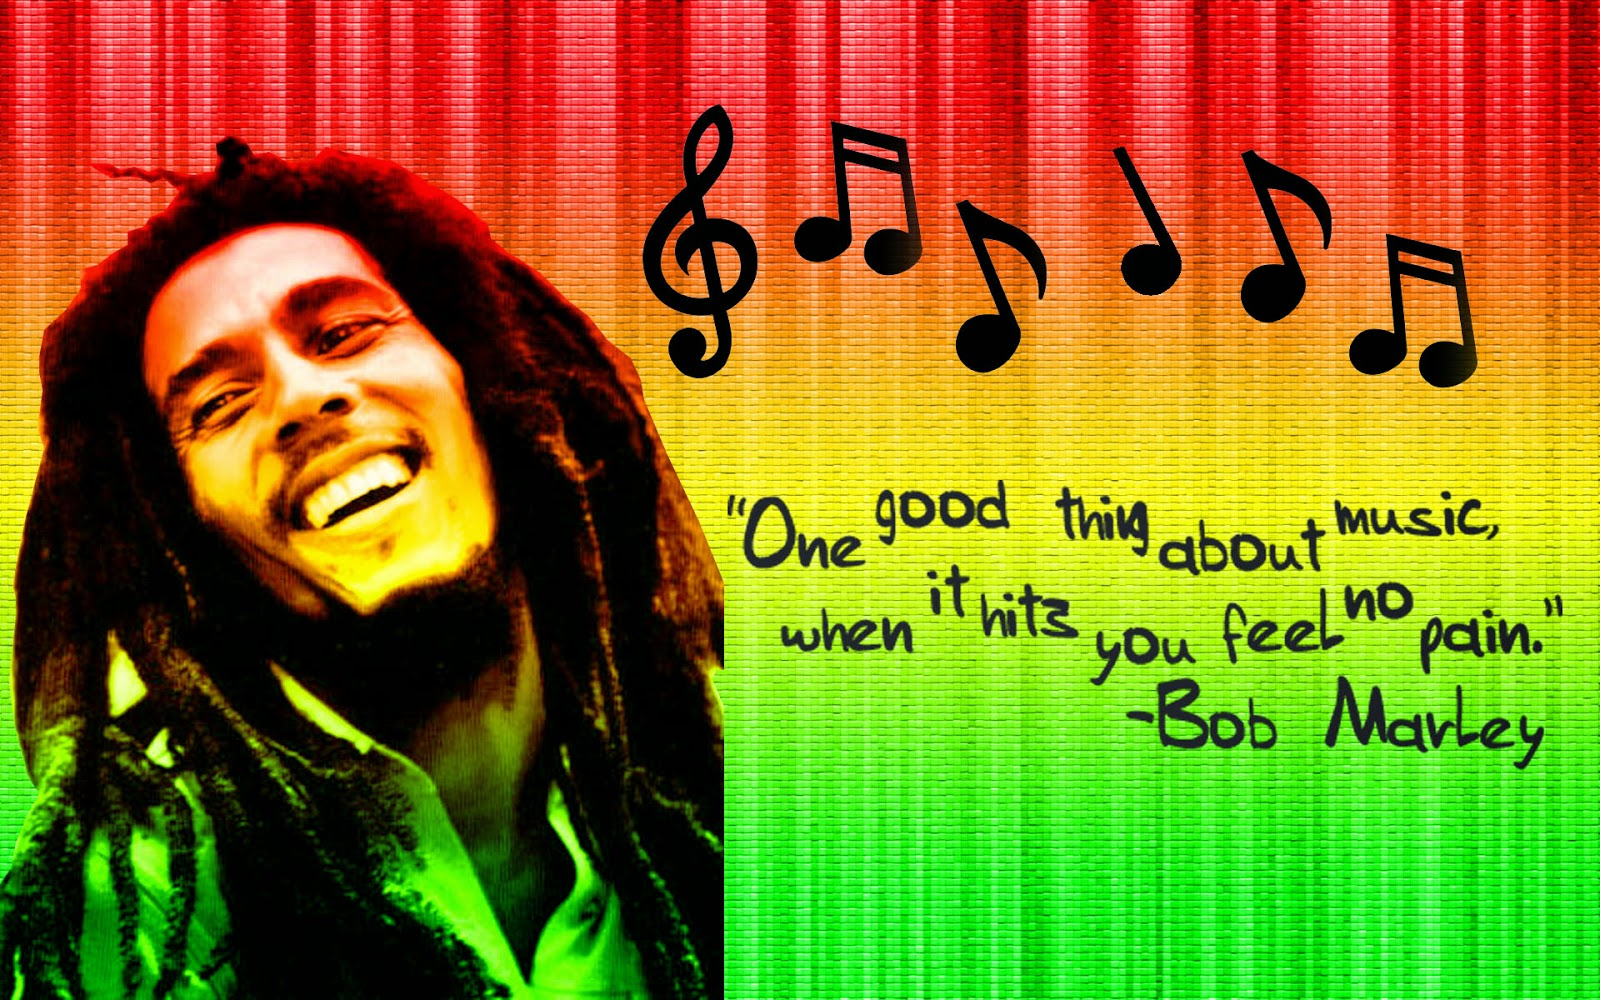 Bob Marley as featured at http://www.jinglejanglejungle.net/2014/12/bob-marley.html